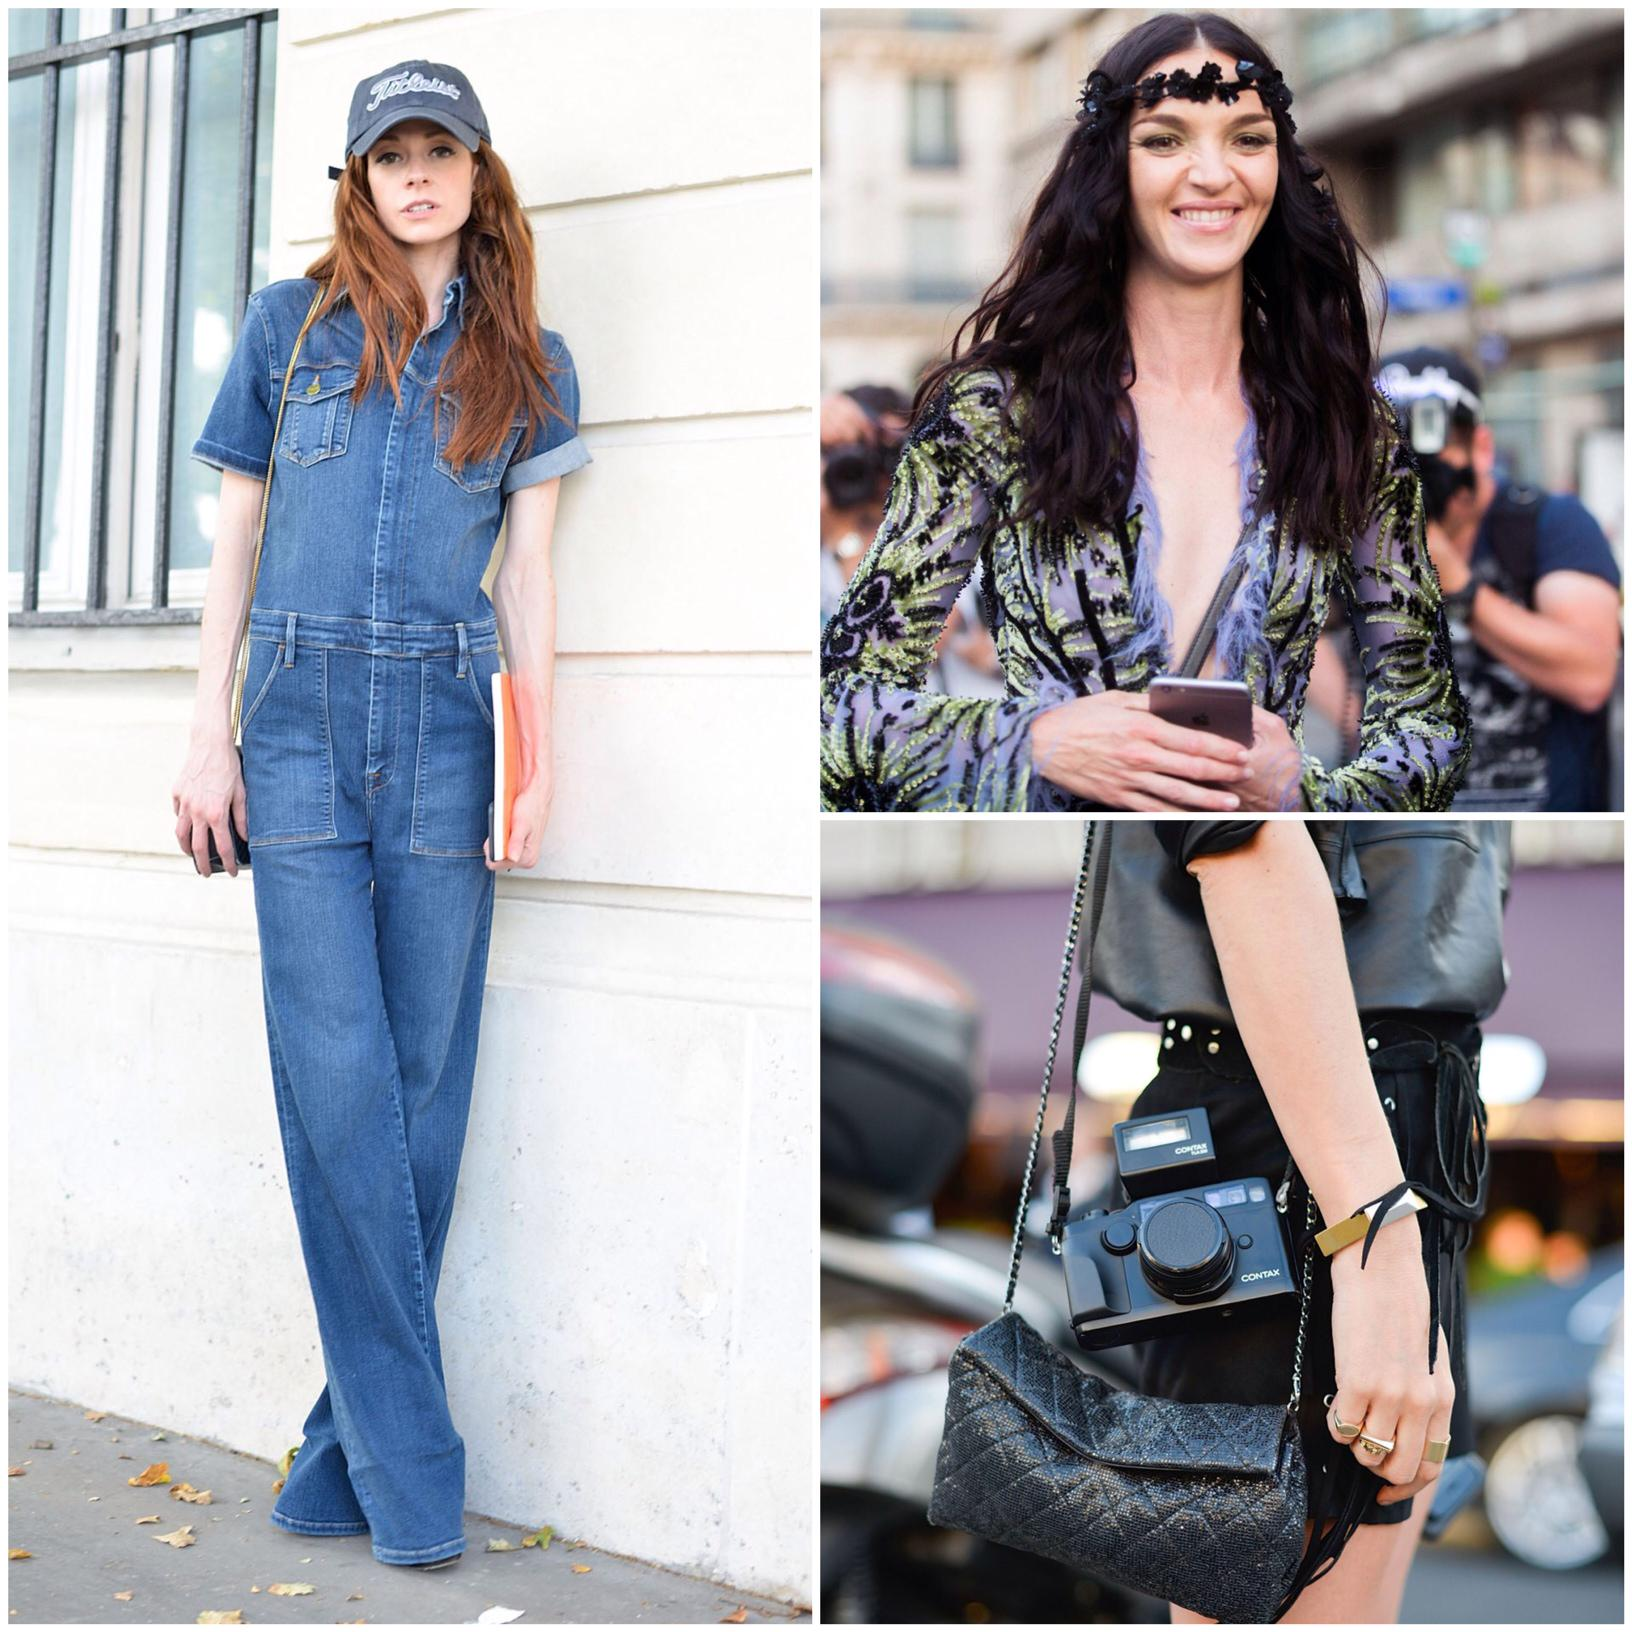 We play style spy on the #couture streets of Paris: http://t.co/4vuQb2nARz http://t.co/7AkQEenFq0